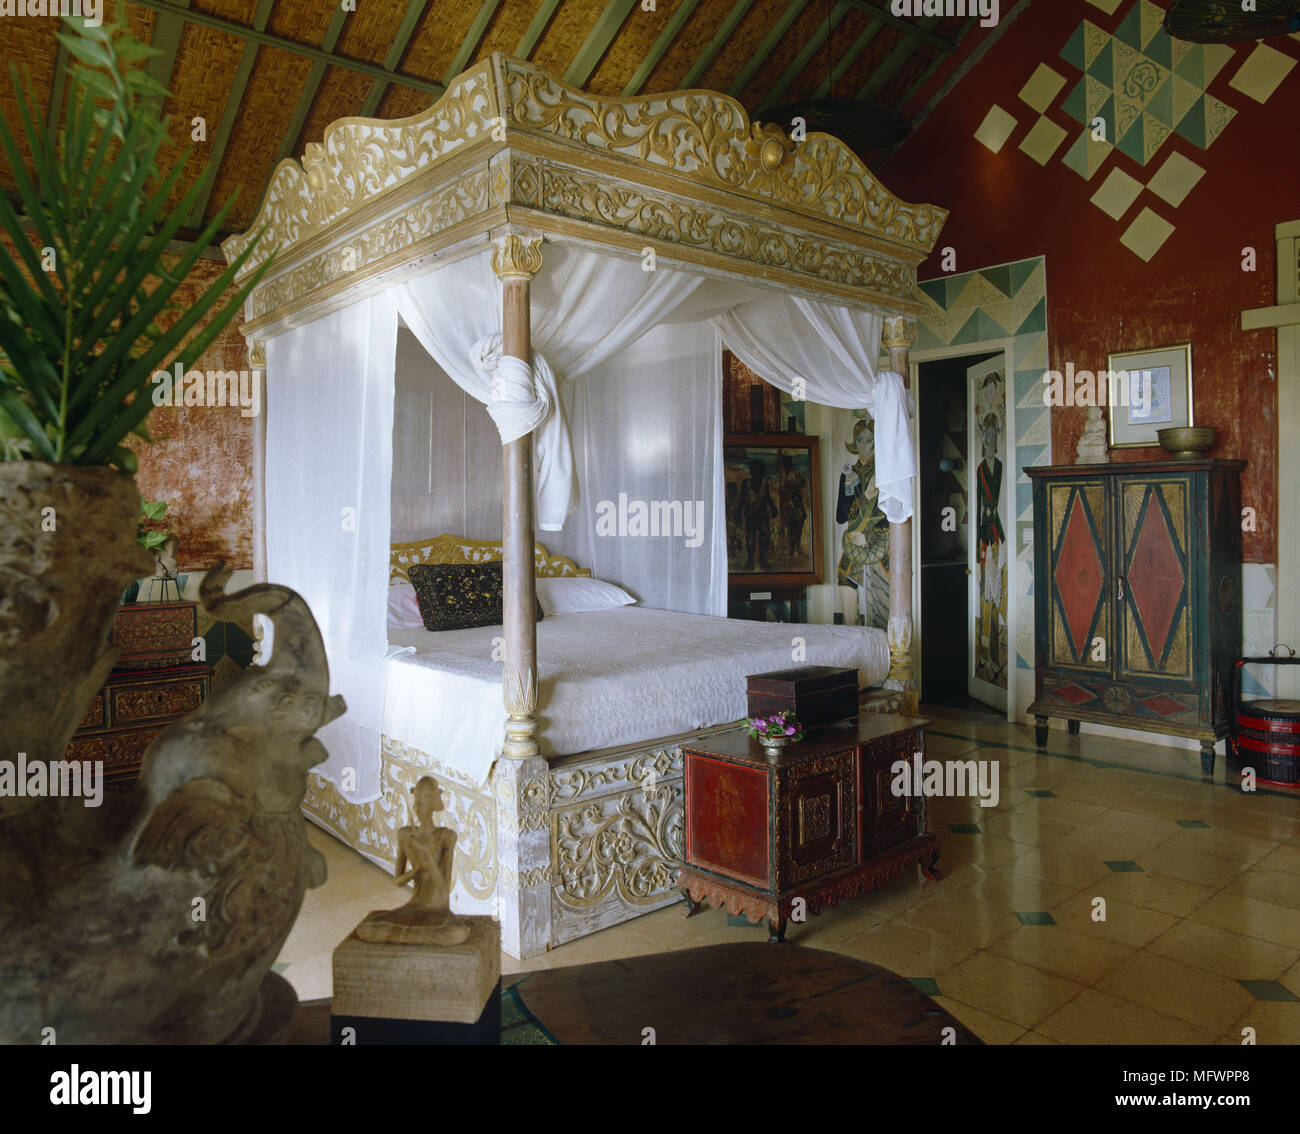 Ornate Four Poster Bed With Canopy In Room With Decorated Walls And Tiled  Floor